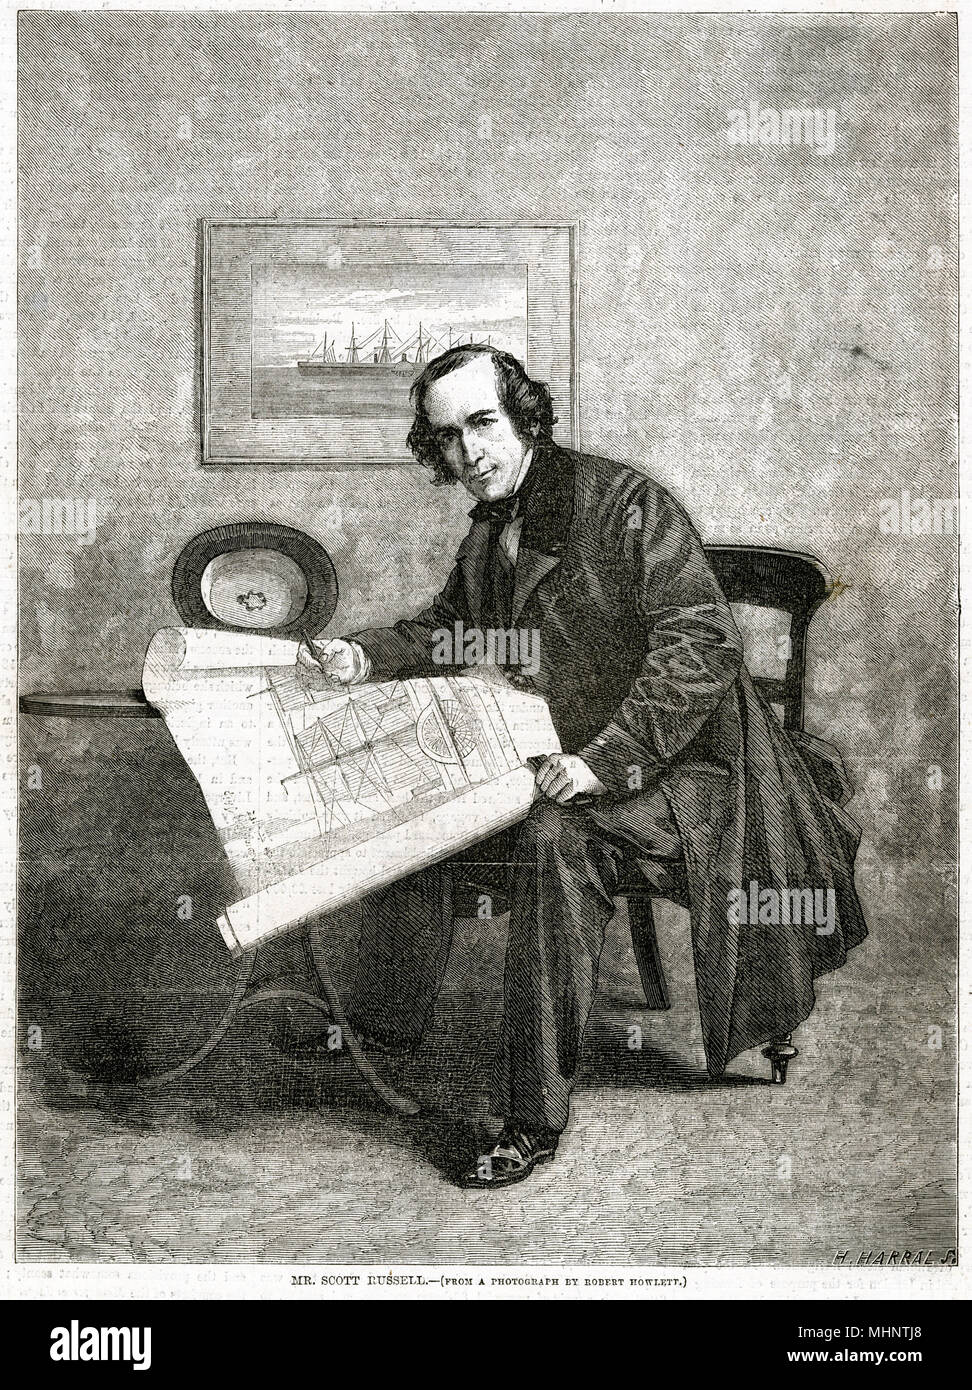 John Scott Russell (1808 - 1882), Scottish civil engineer, naval architect and shipbuilder who built the Great Eastern in collaboration with Isambard Kingdom Brunel.     Date: 1858 - Stock Image